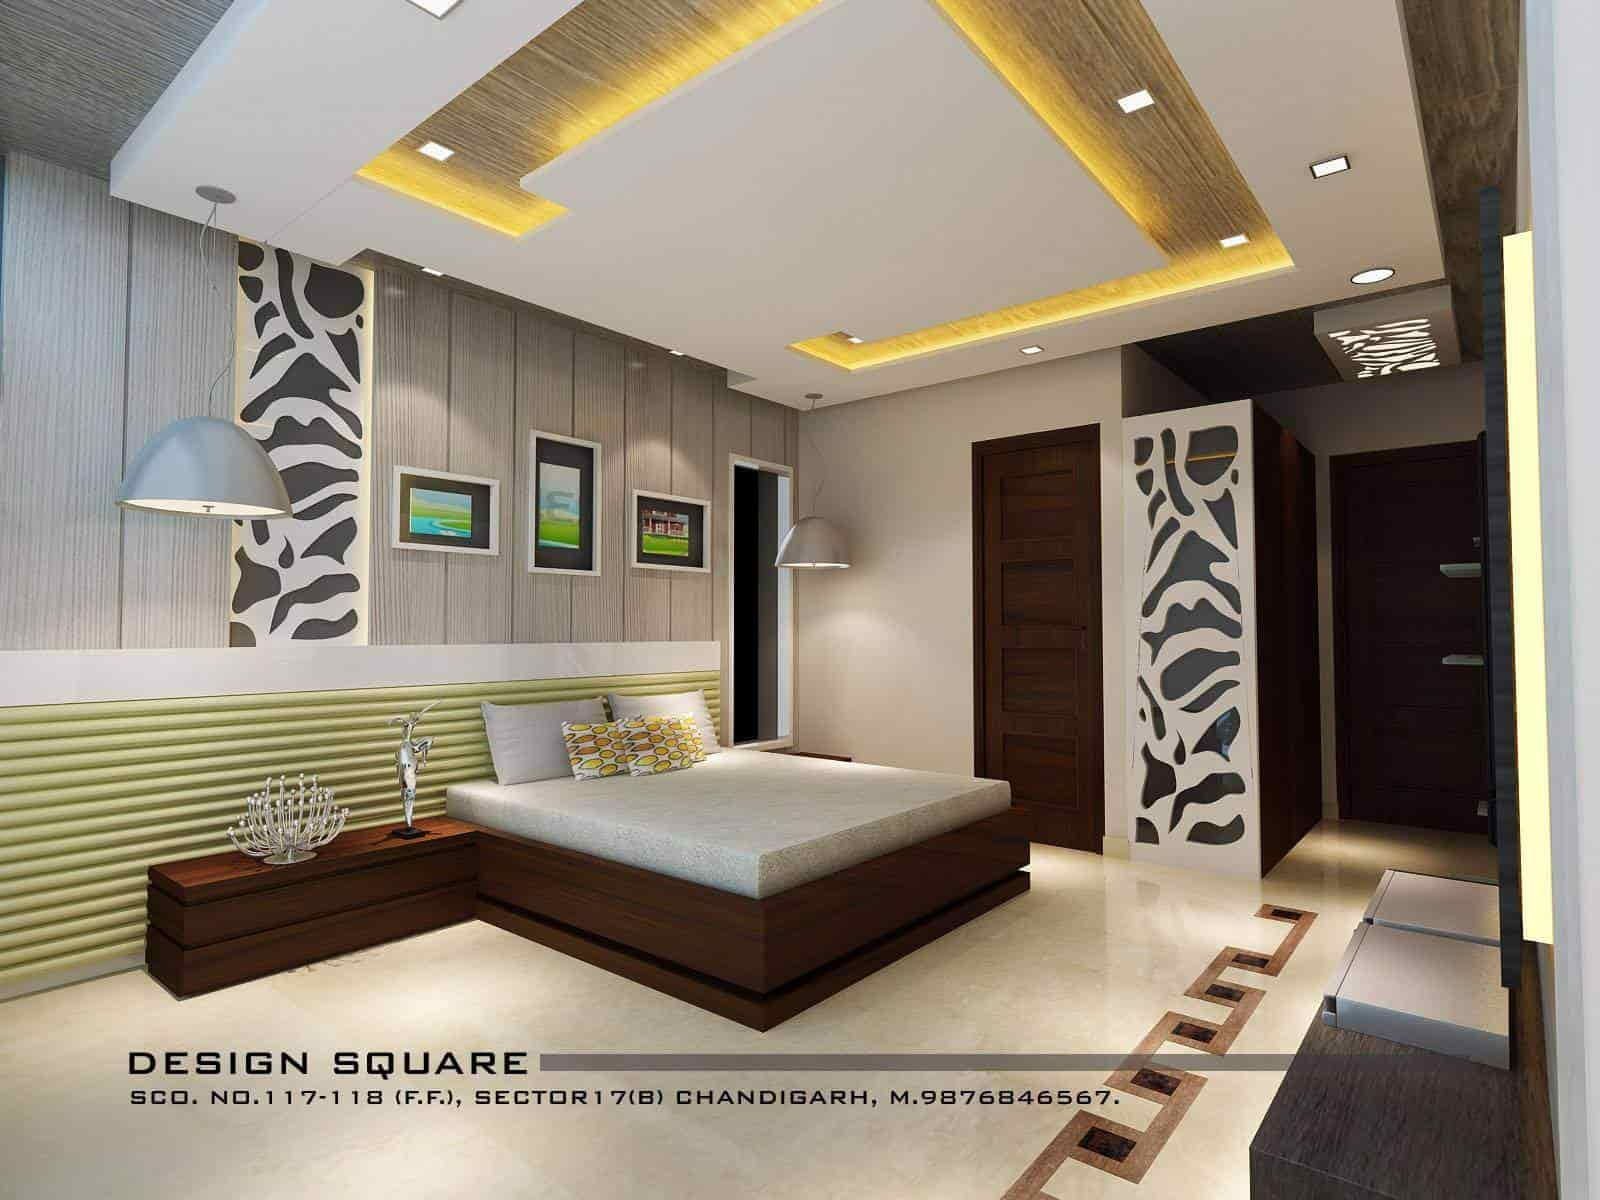 Design Square Photos Chandigarh Sector 51 Mohali Pictures Images Gallery Justdial